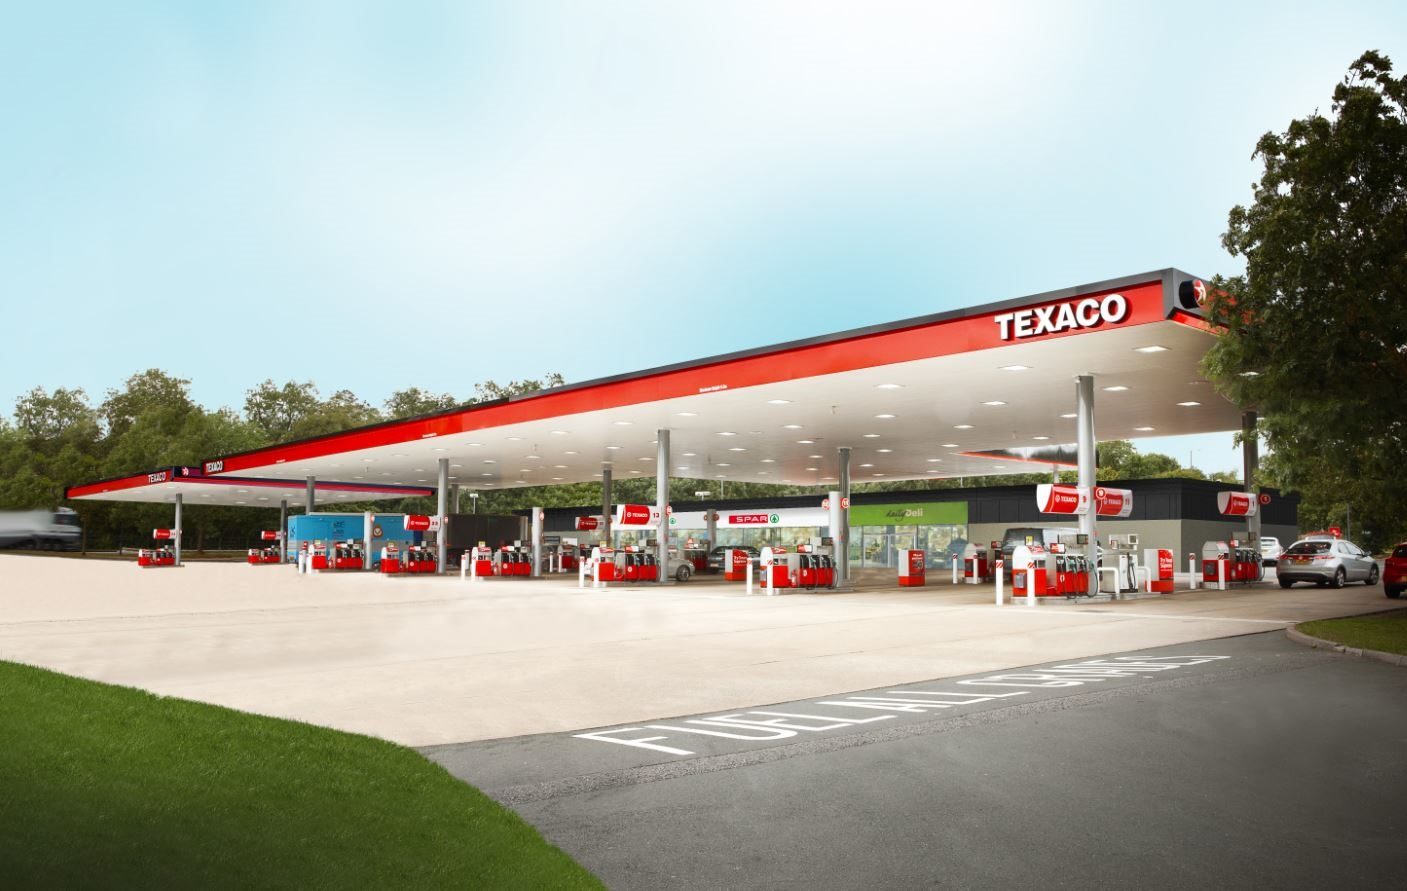 texaco skelton pic